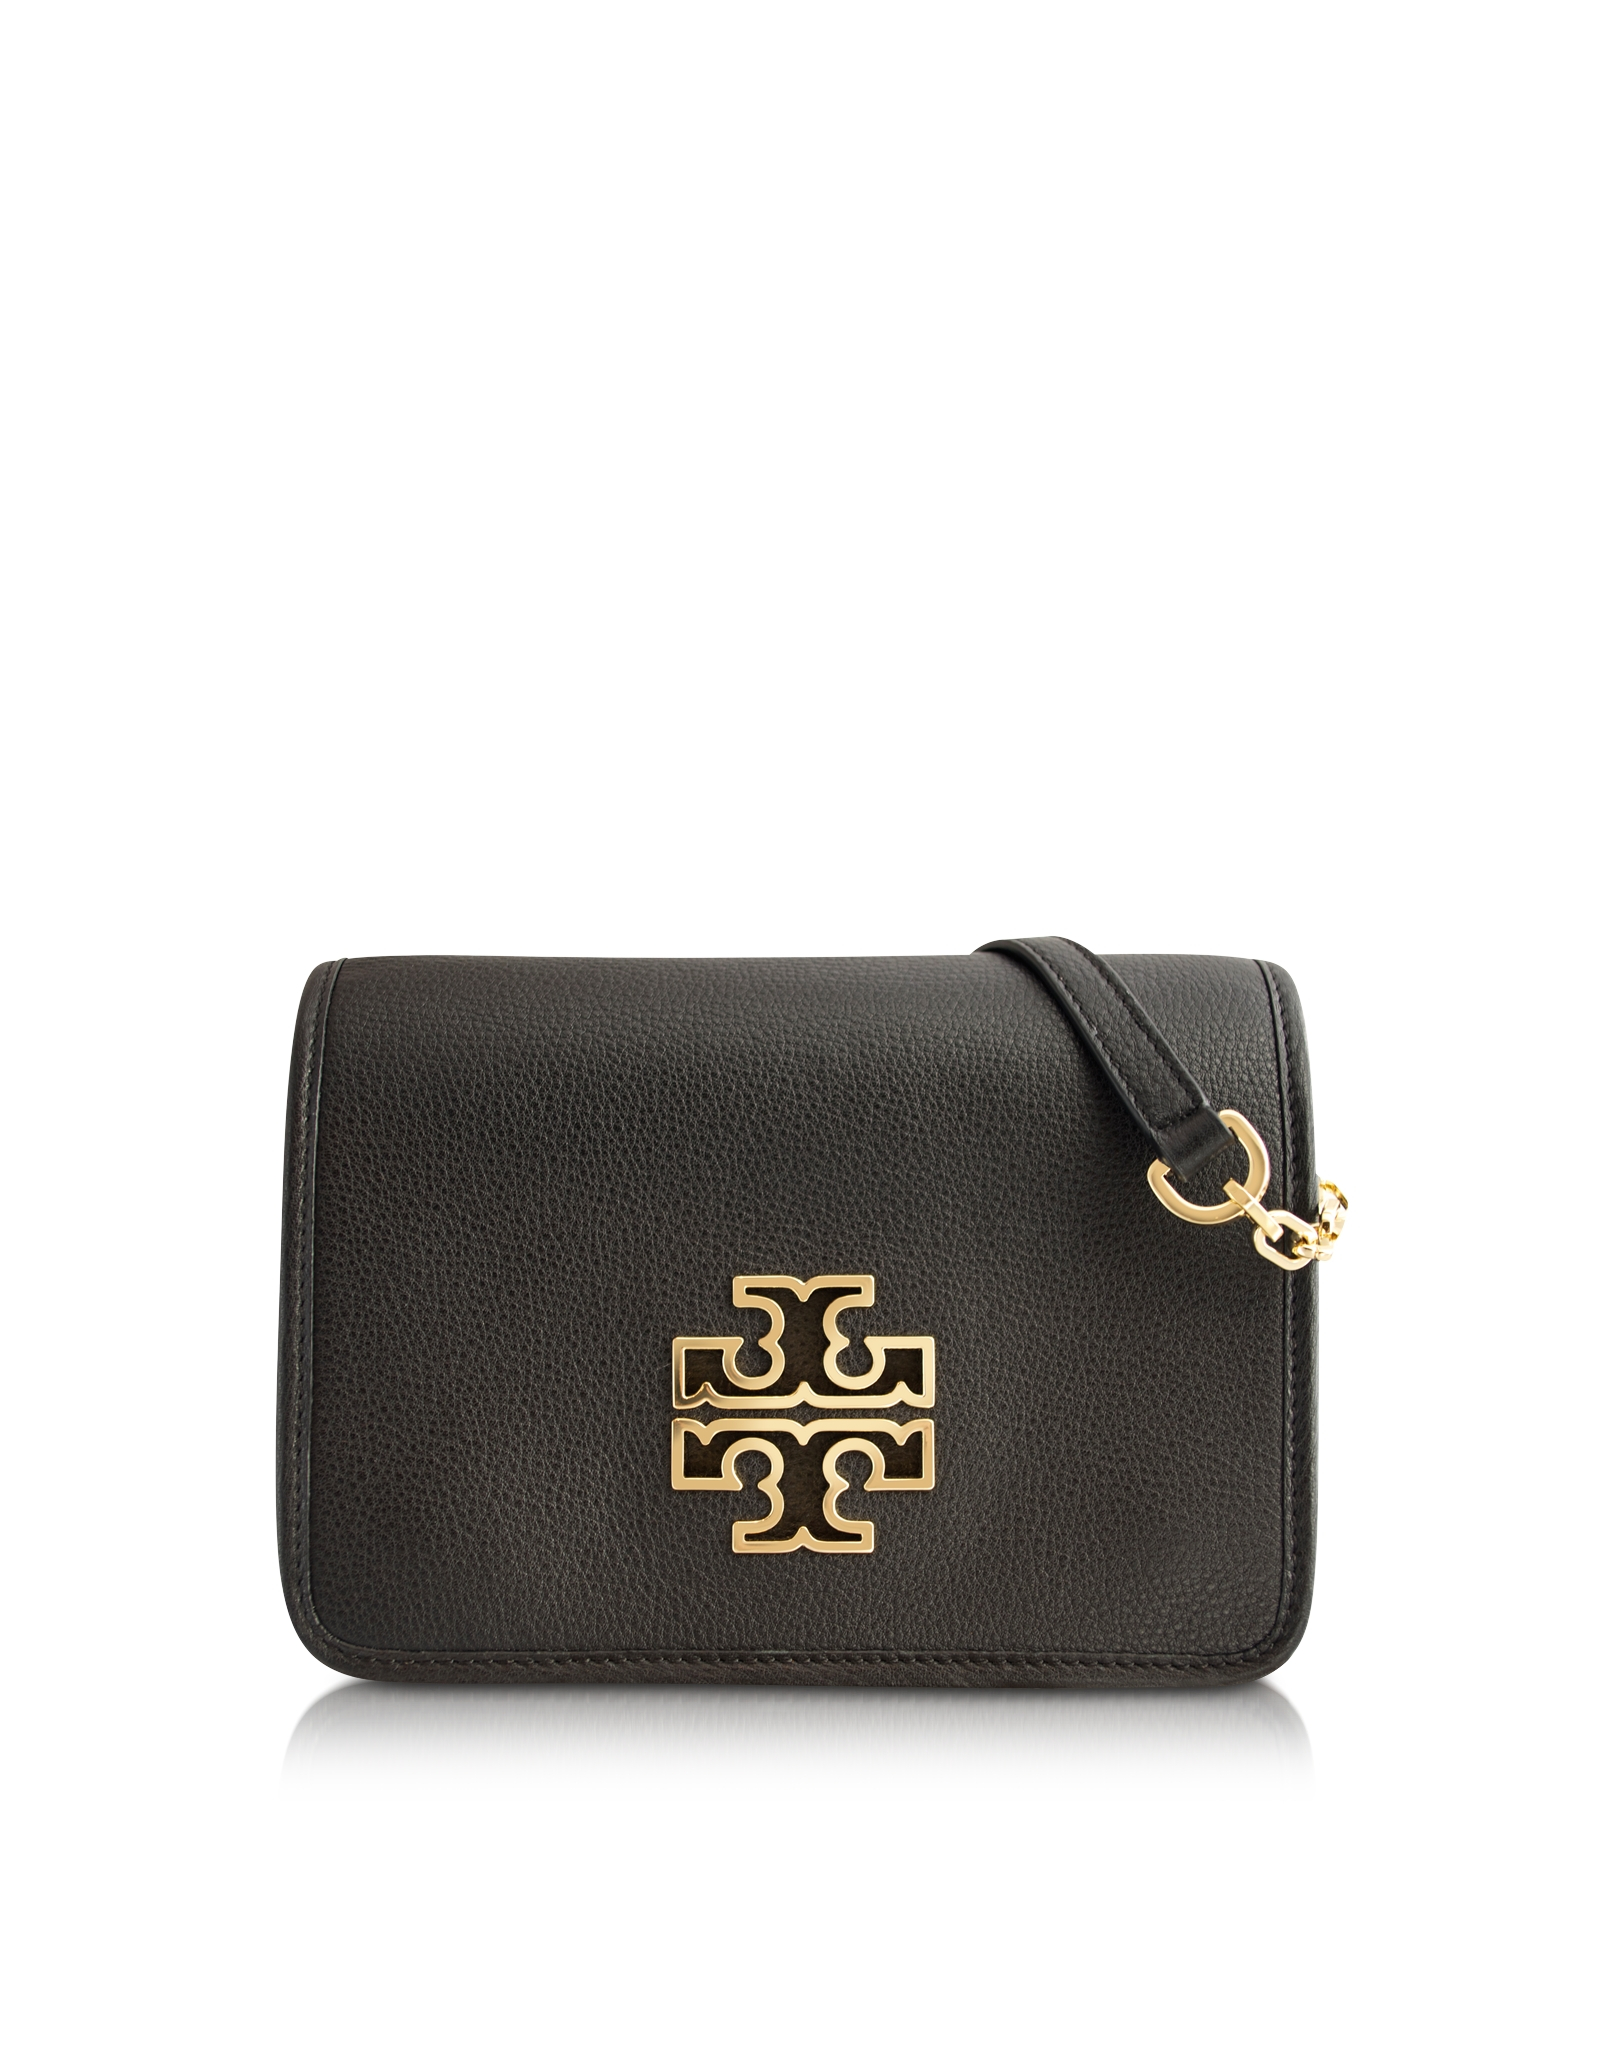 756d96e5d49 Lyst - Tory Burch Britten Combo Crossbody Bag in Black